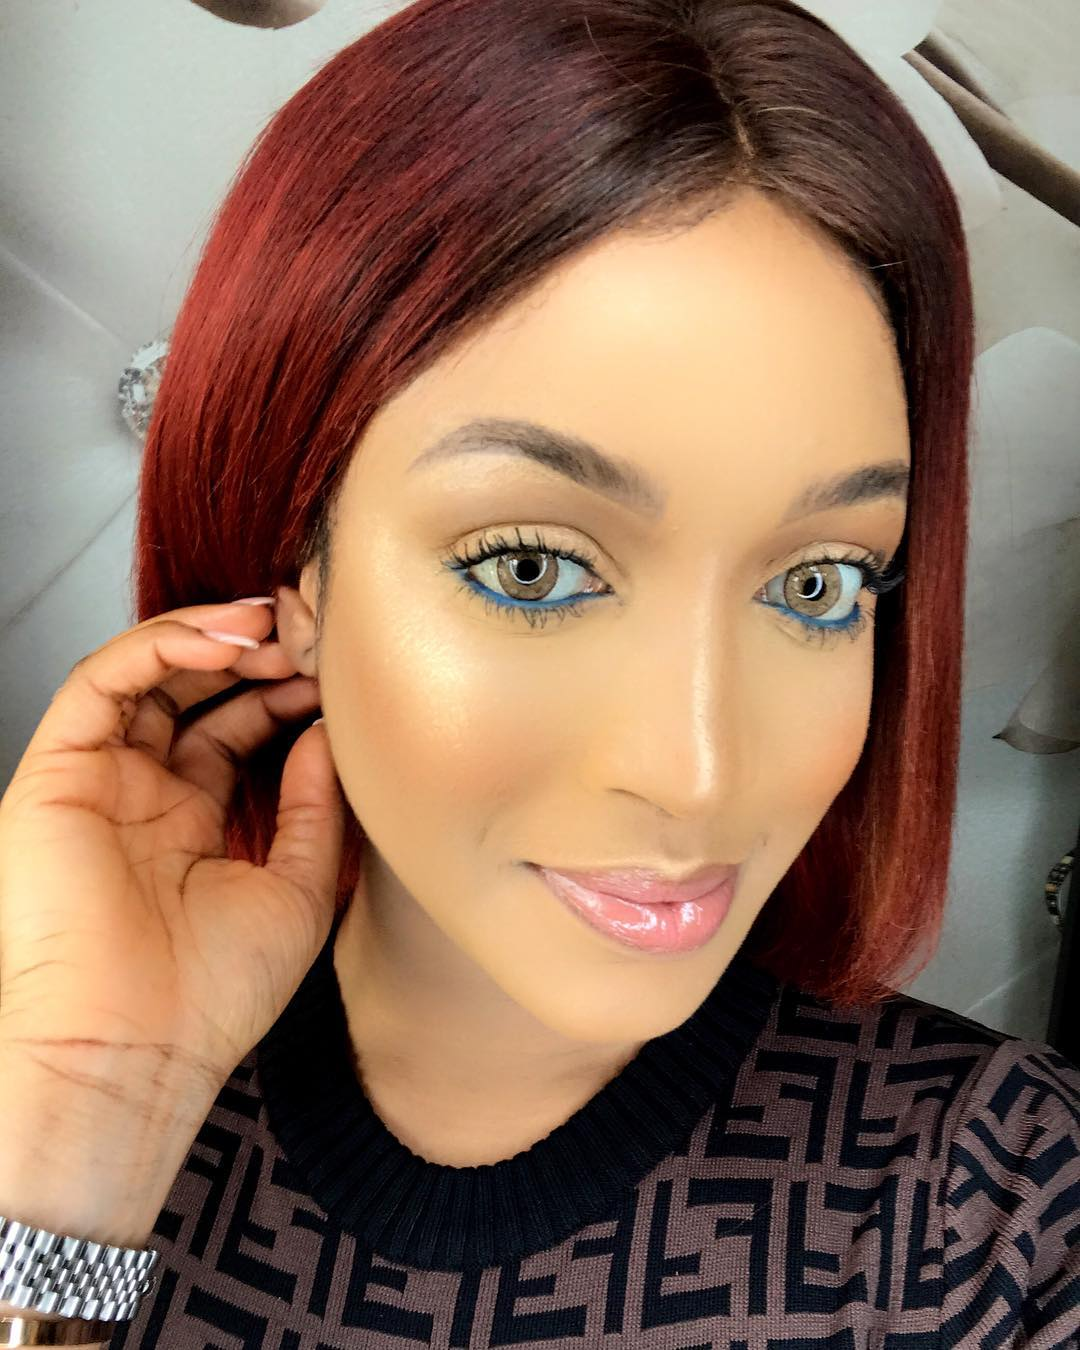 Dabota Lawson's message